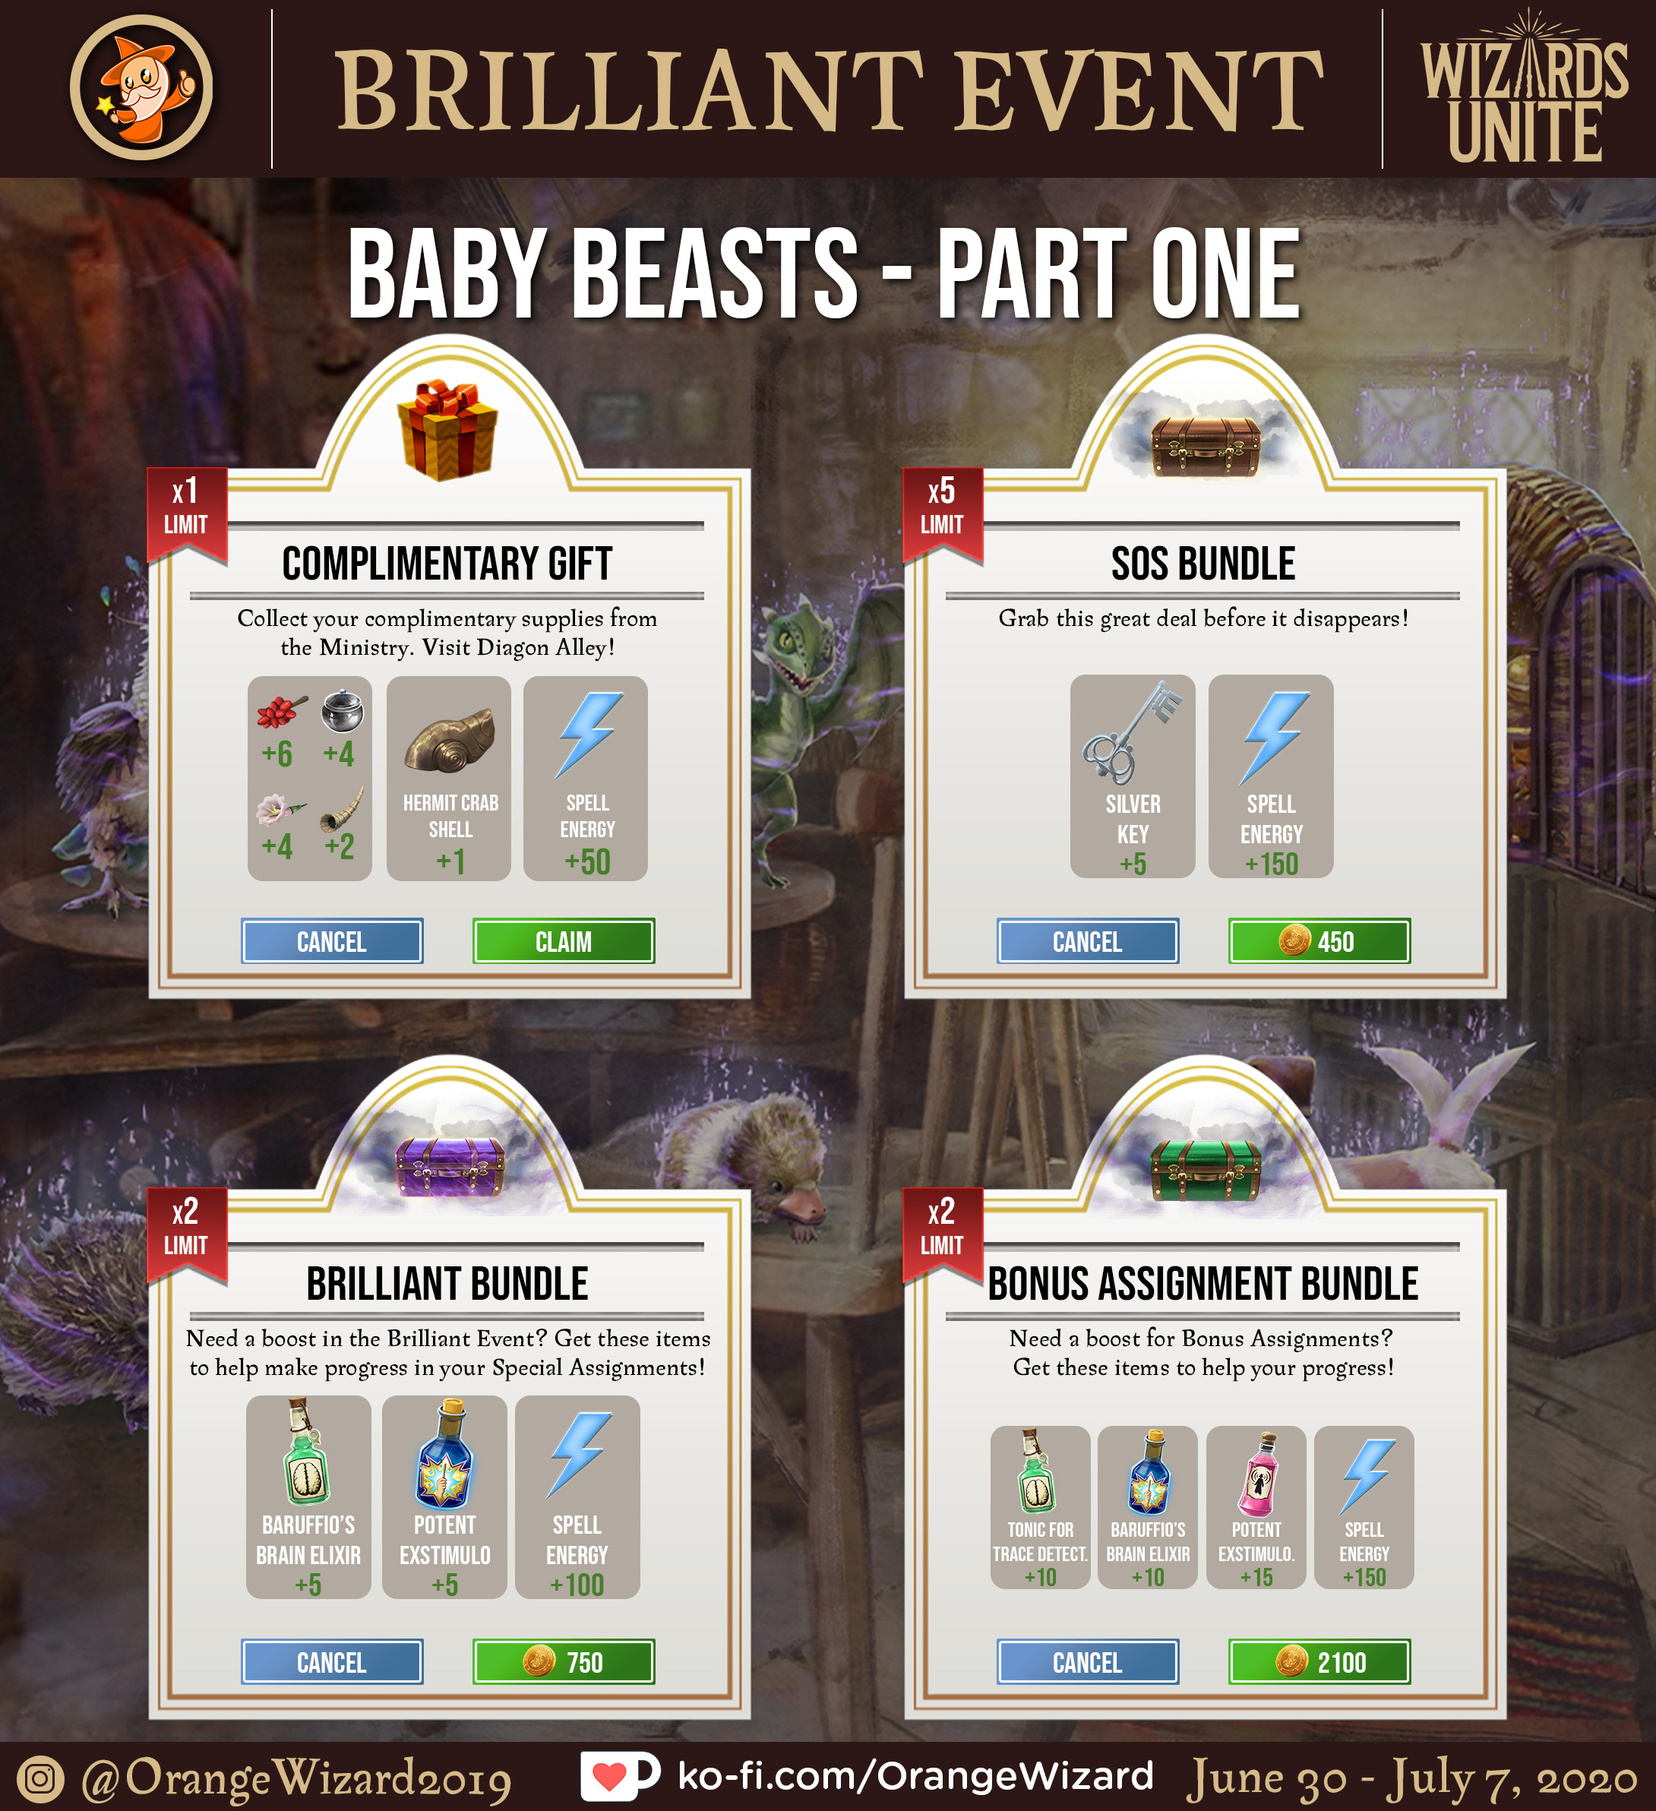 BRILLIANT_EVENT_-_BABY_BEASTS_I_-_GIFT__BUNDLES.jpg